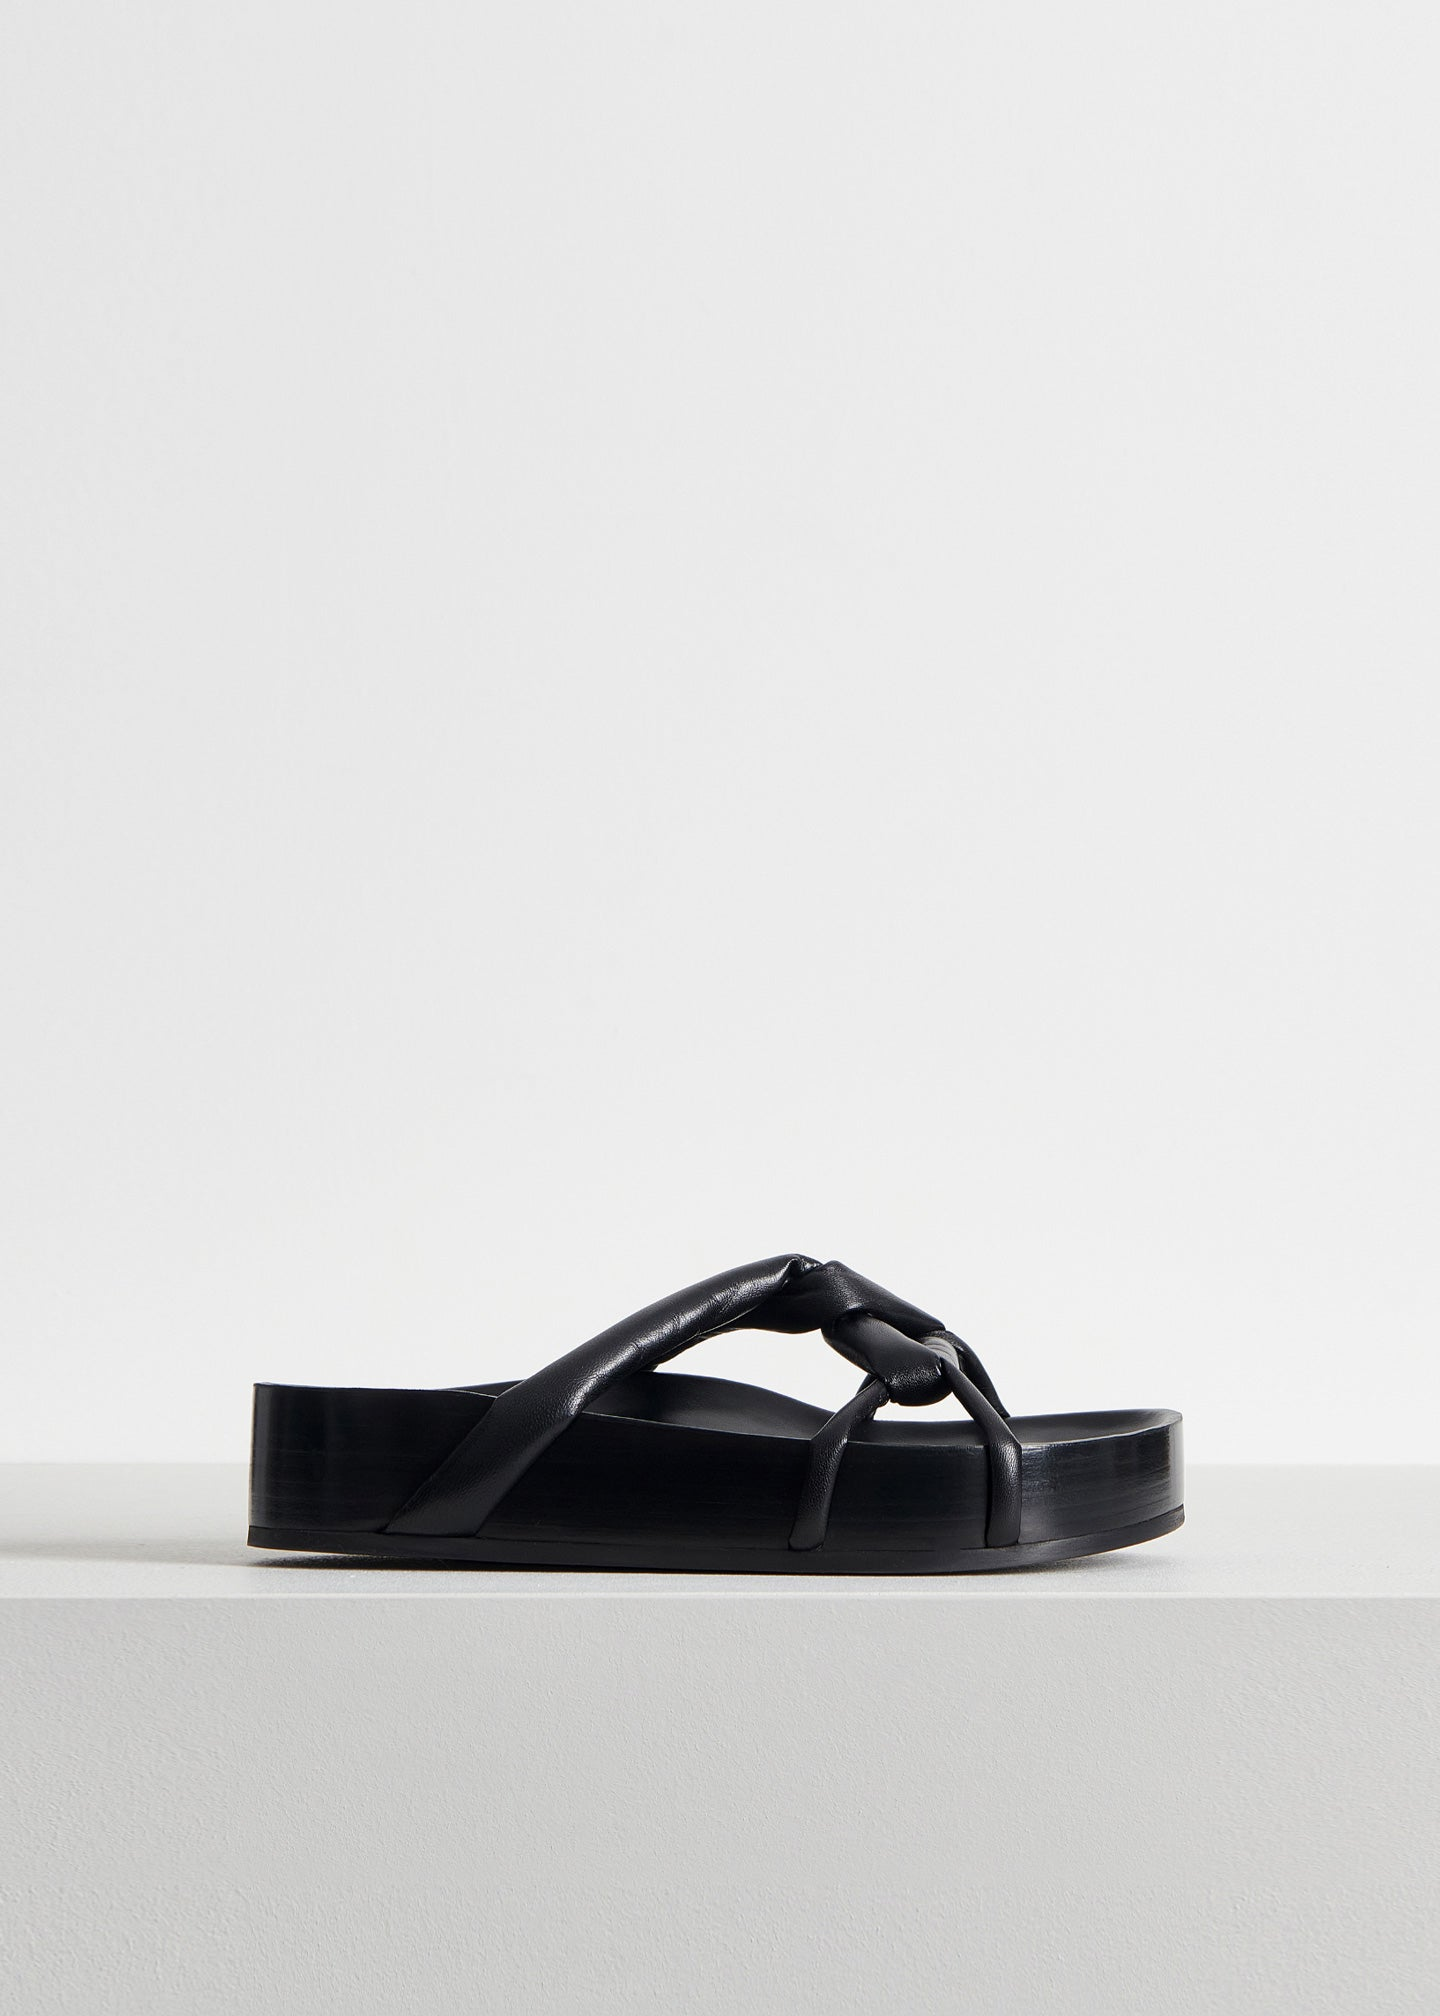 CO - Cord Sandal in Smooth Leather - Black